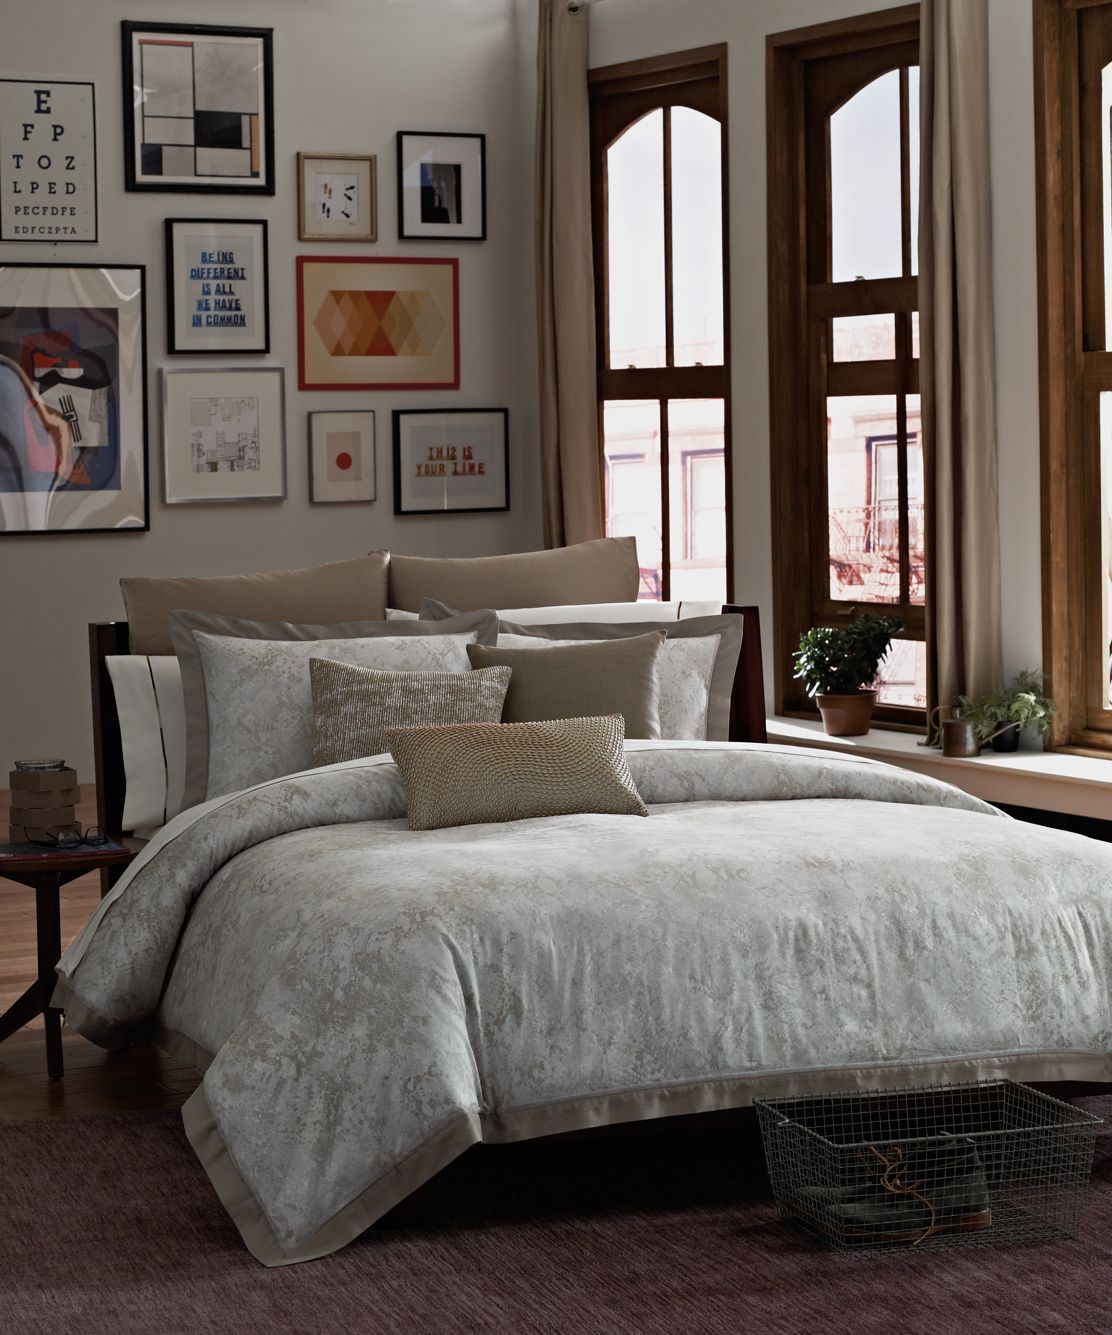 This soft Python animal print comforter brings clean, sophisticated taste to your bedroom in soft neutrals with hints of silver metallic. #bedding #KCRH